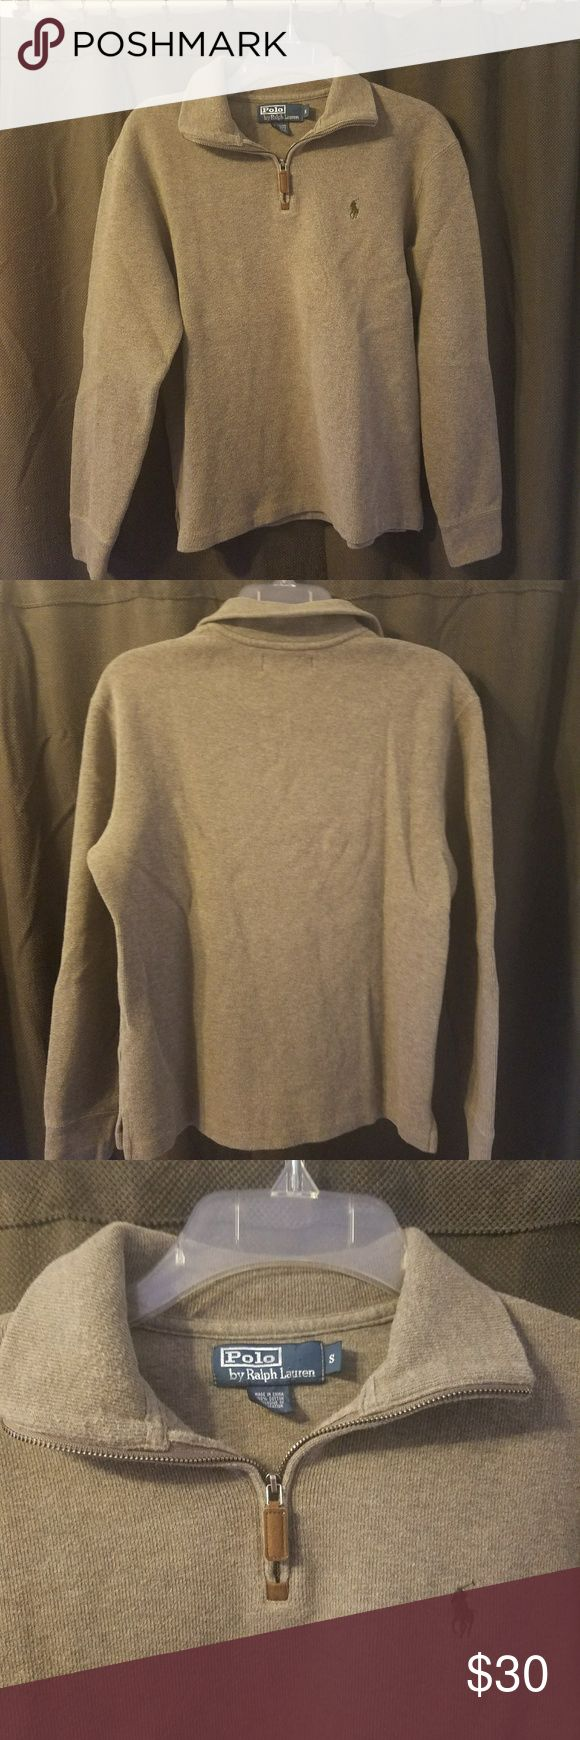 Polo ralph lauren mens sweater pullover size S Very soft and cozy, great condition. See pics for condition and details feel free to ask any questions Ralph Lauren Sweaters Zip Up